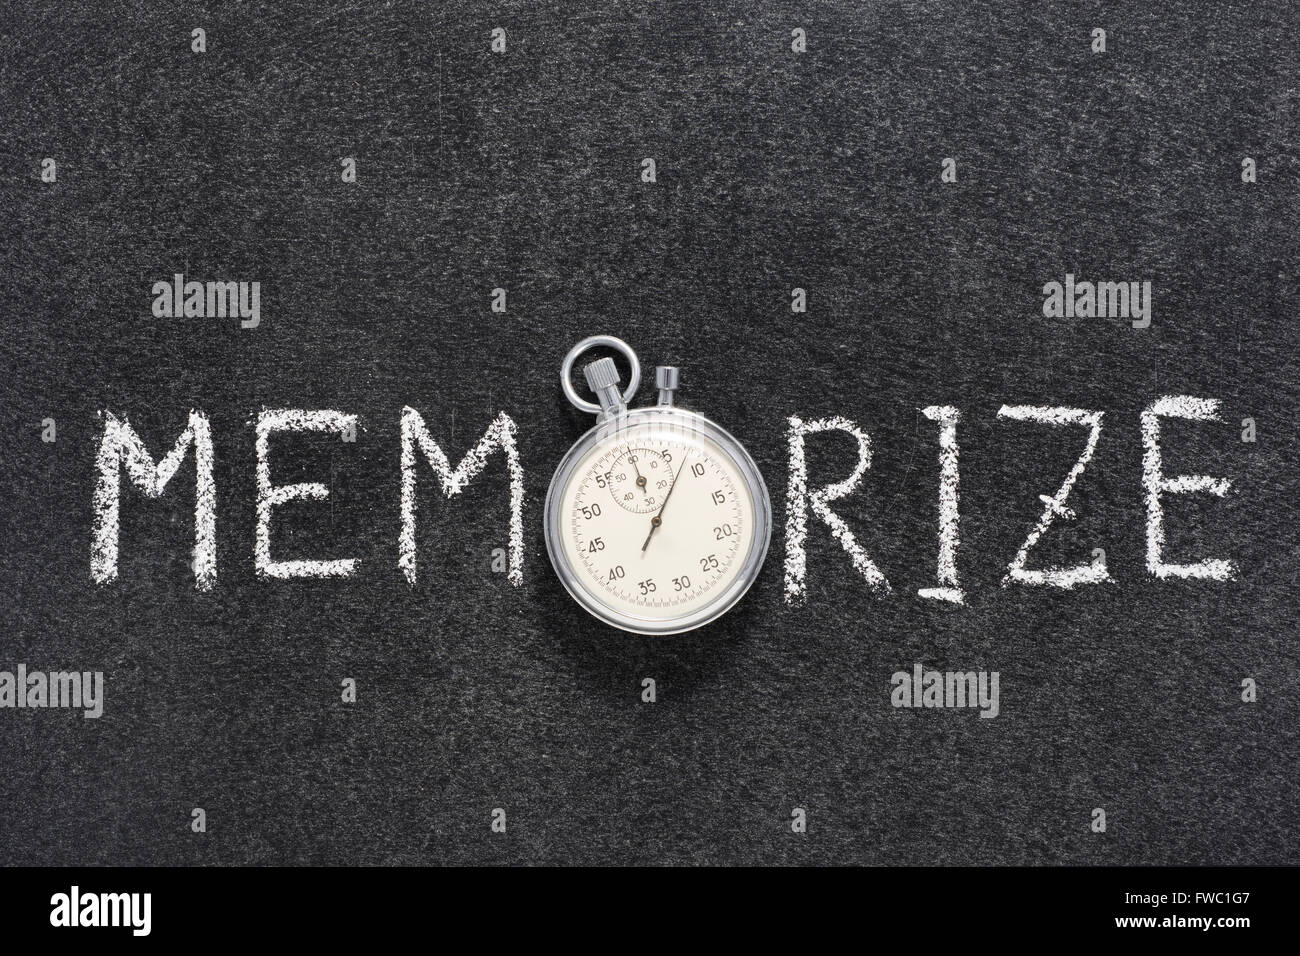 memorize word handwritten on chalkboard with vintage precise stopwatch used instead of O - Stock Image